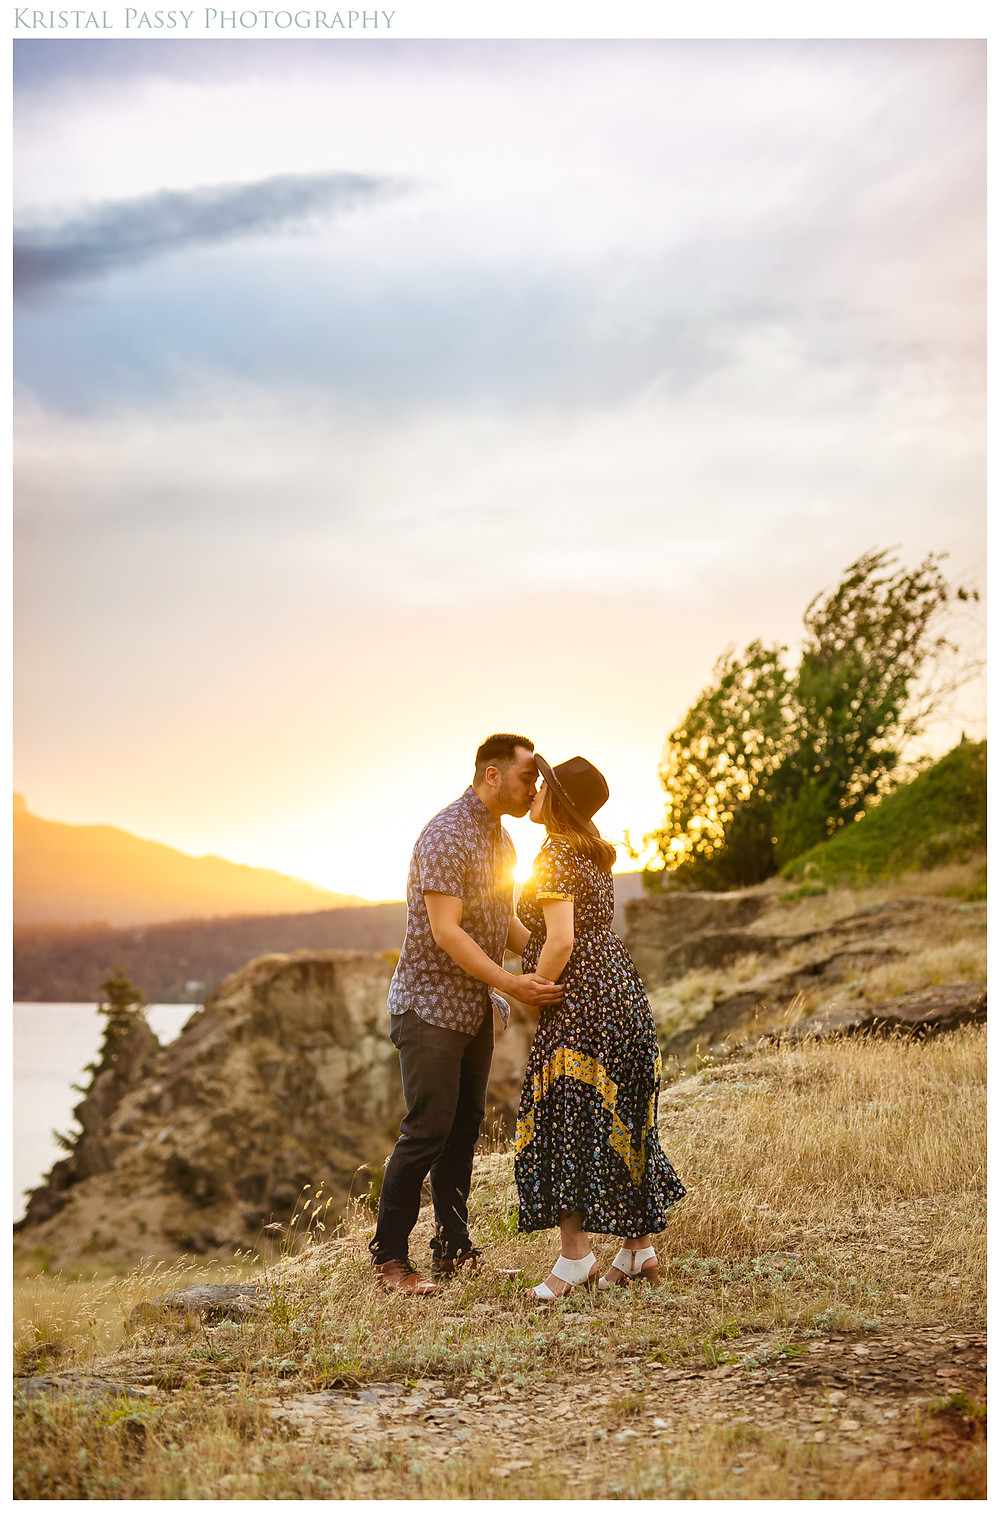 Hood River Maternity Photographer